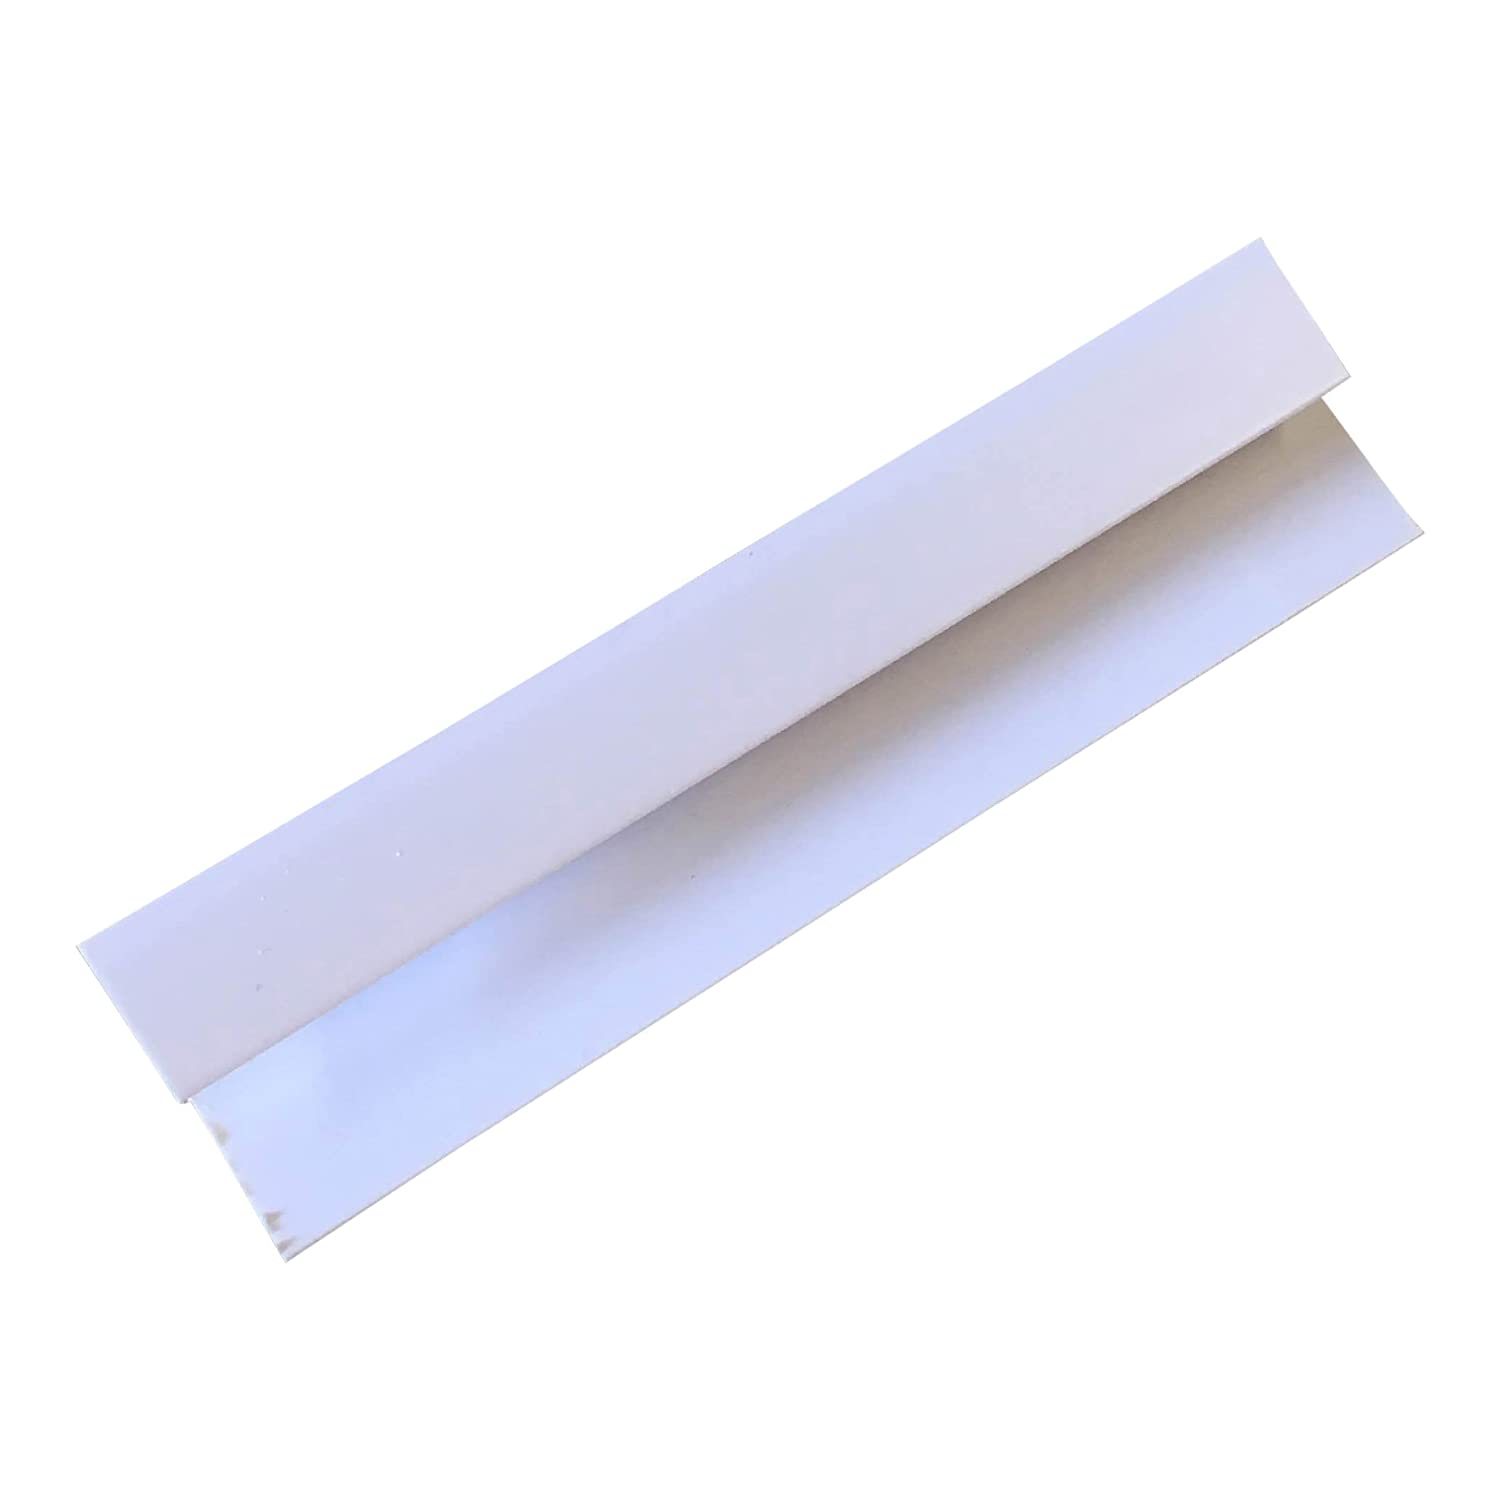 White 8mm End Cap Trim For Bathroom Panels Ceiling Cladding Shower ...